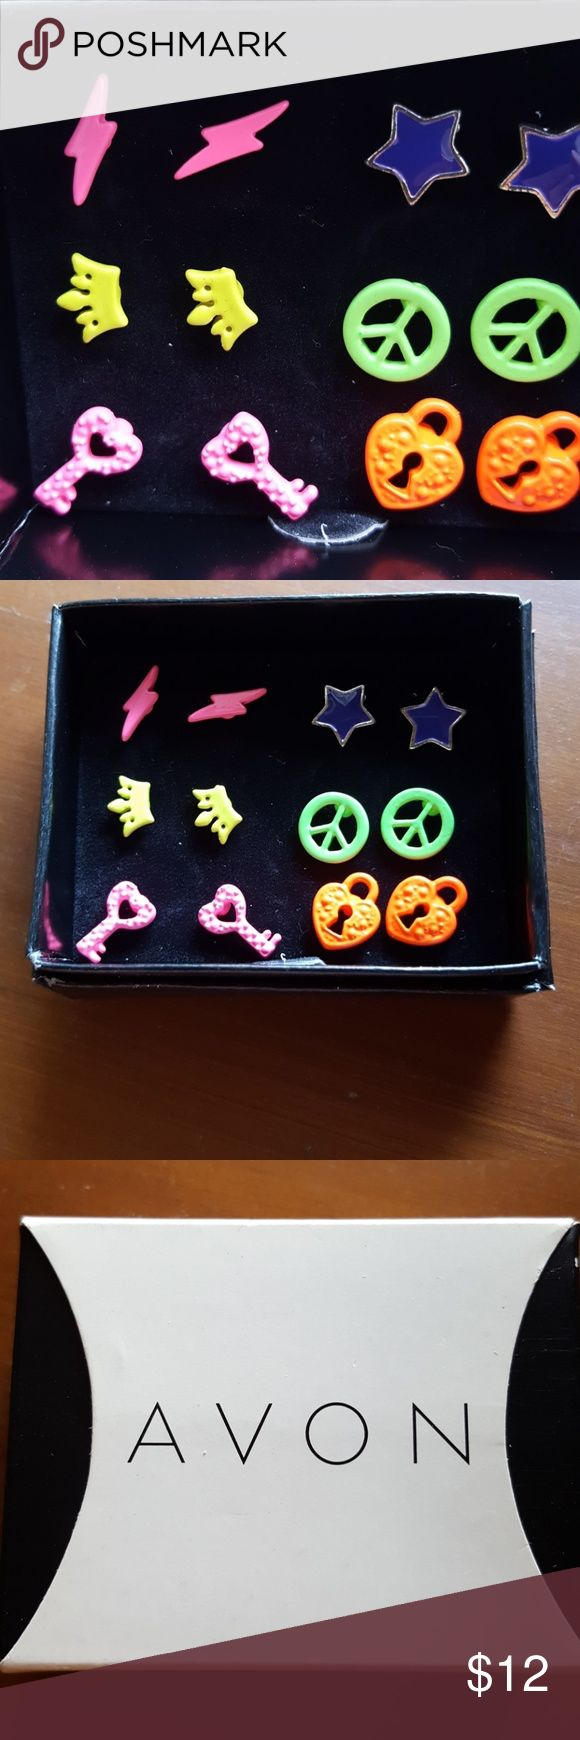 Set of 6 neon colored post earrings. Fun set of neon earrings. Avon brand. One pair of purple stars, green peace signs, orange heart shaped locks, pink lightning bolts, yellow crown and pink heart shaped keys. Very bright and fun. Brand new, never been worn. Avon Jewelry Earrings